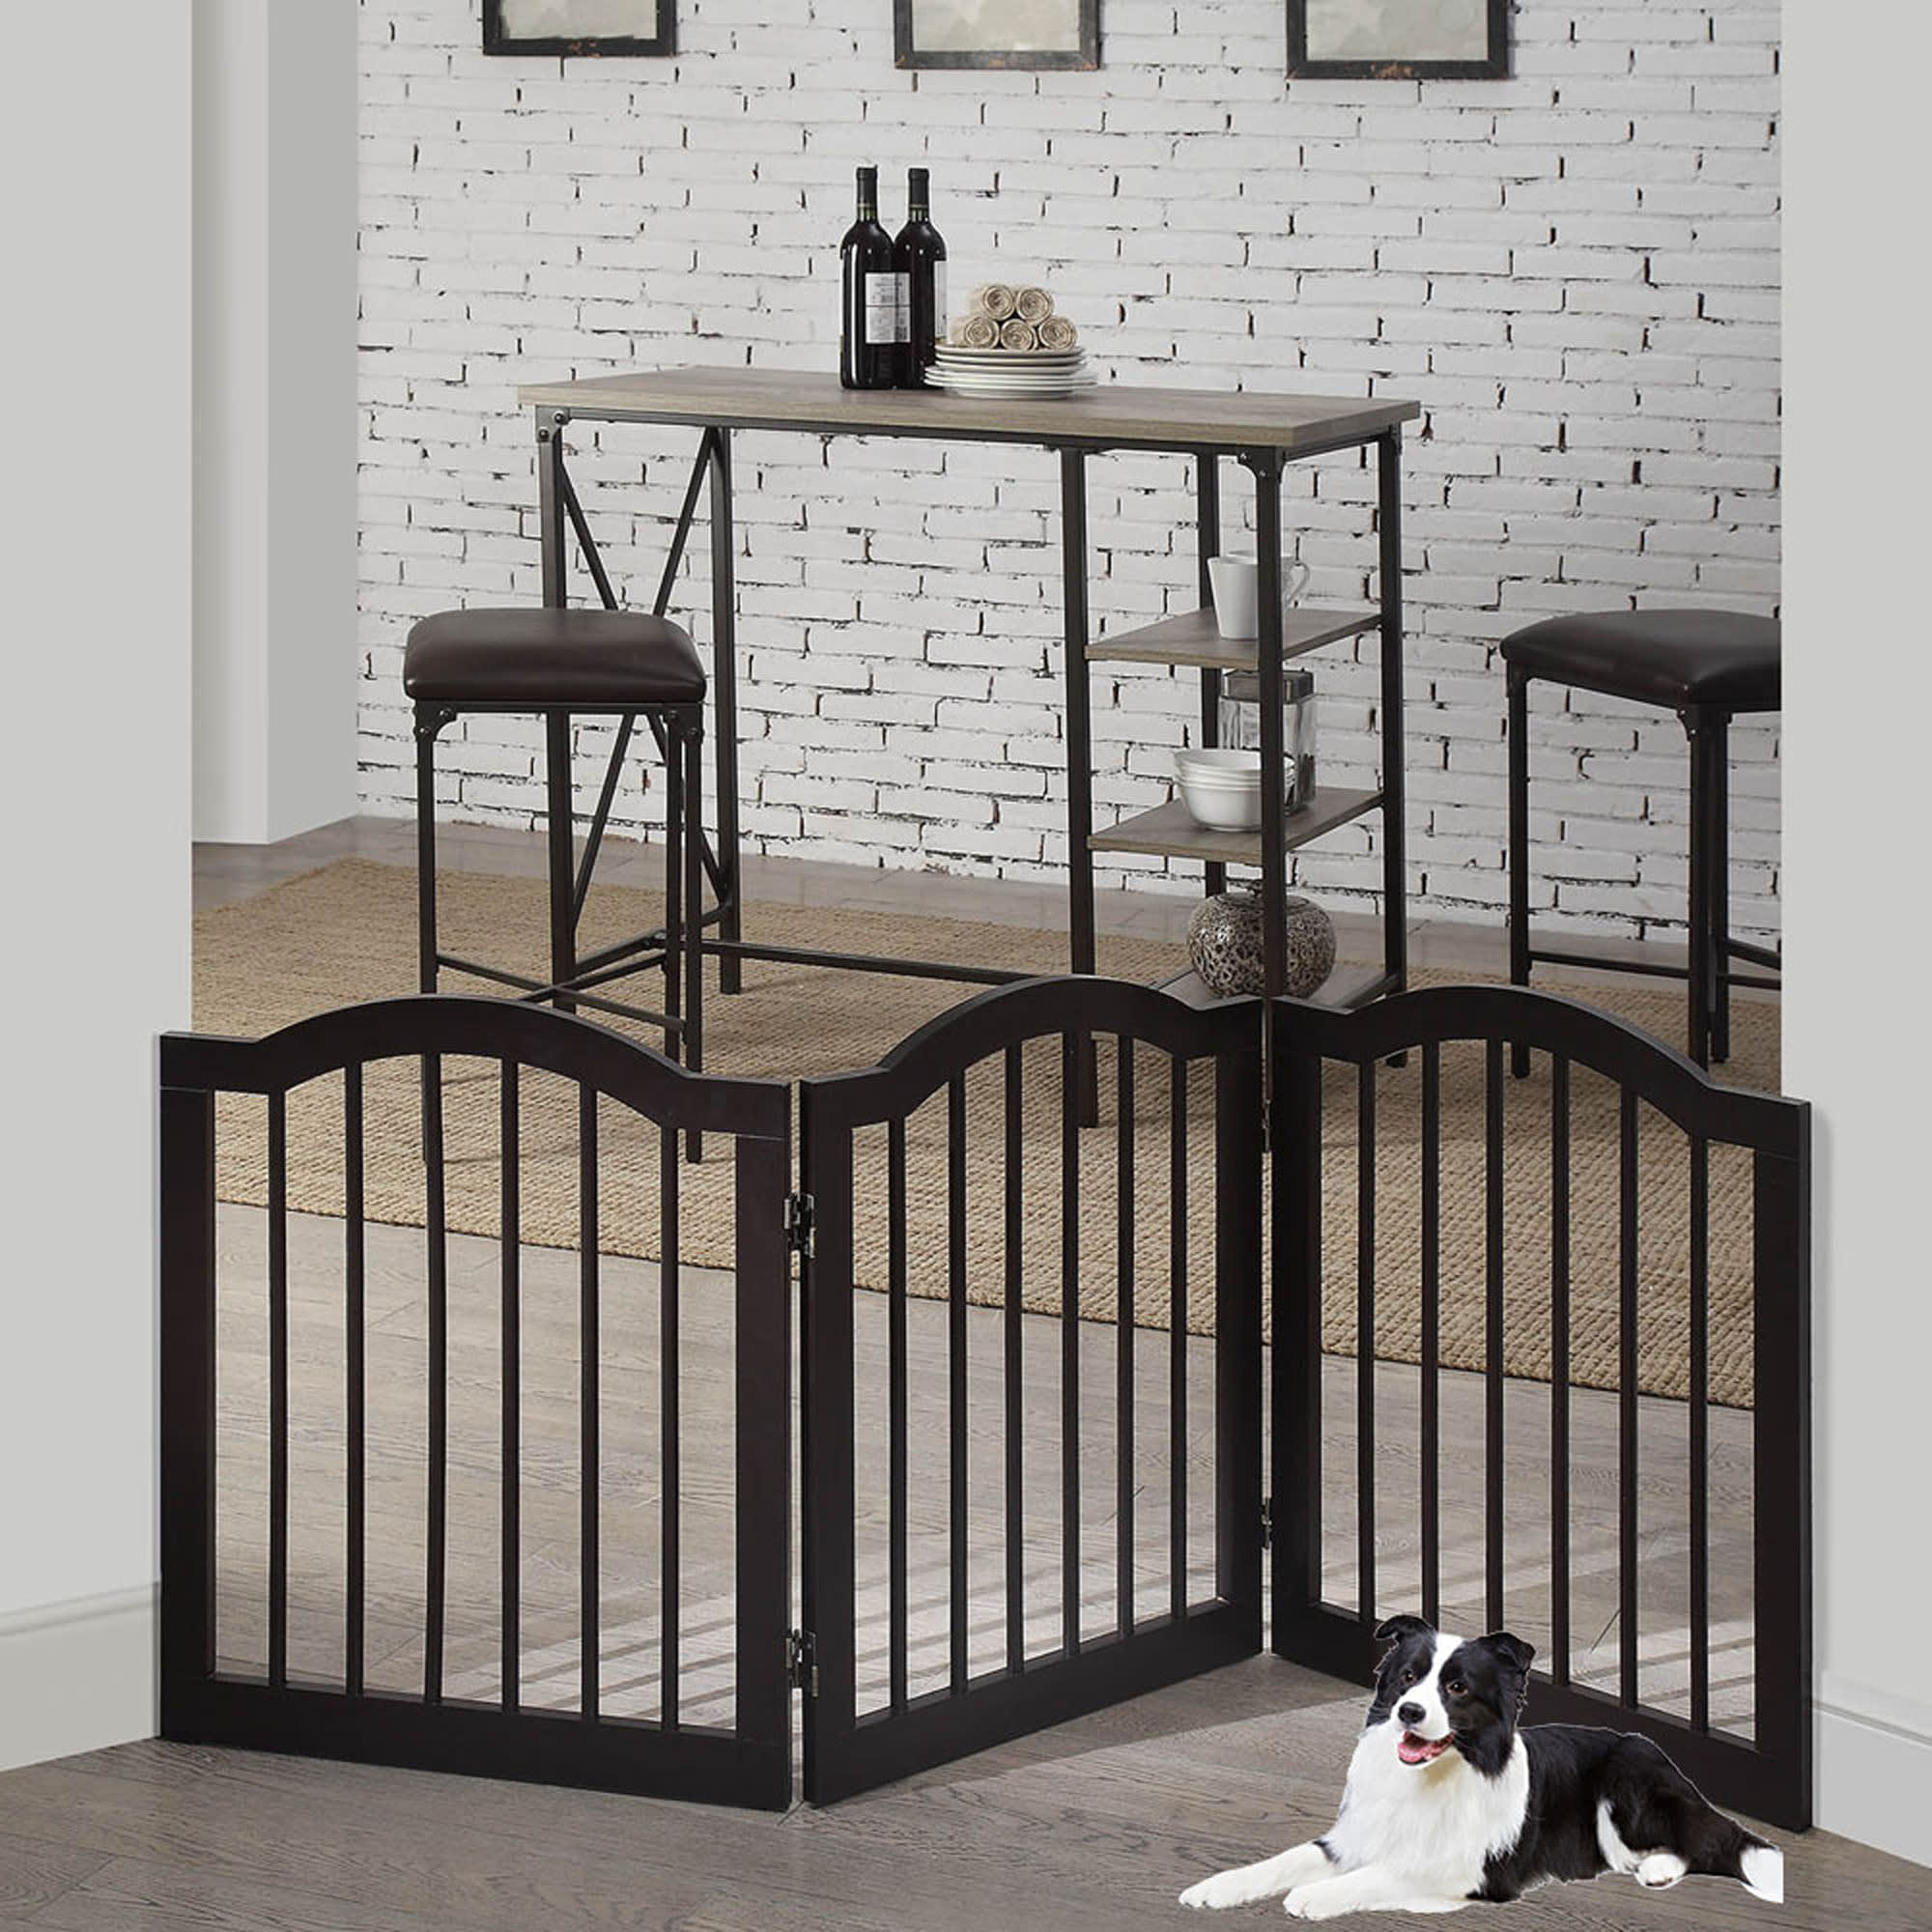 "UniPaws Arched Top 3 Panel Dog Gate Espresso Freestanding, 20""-60"" W X 24"" H, Medium, Brown"